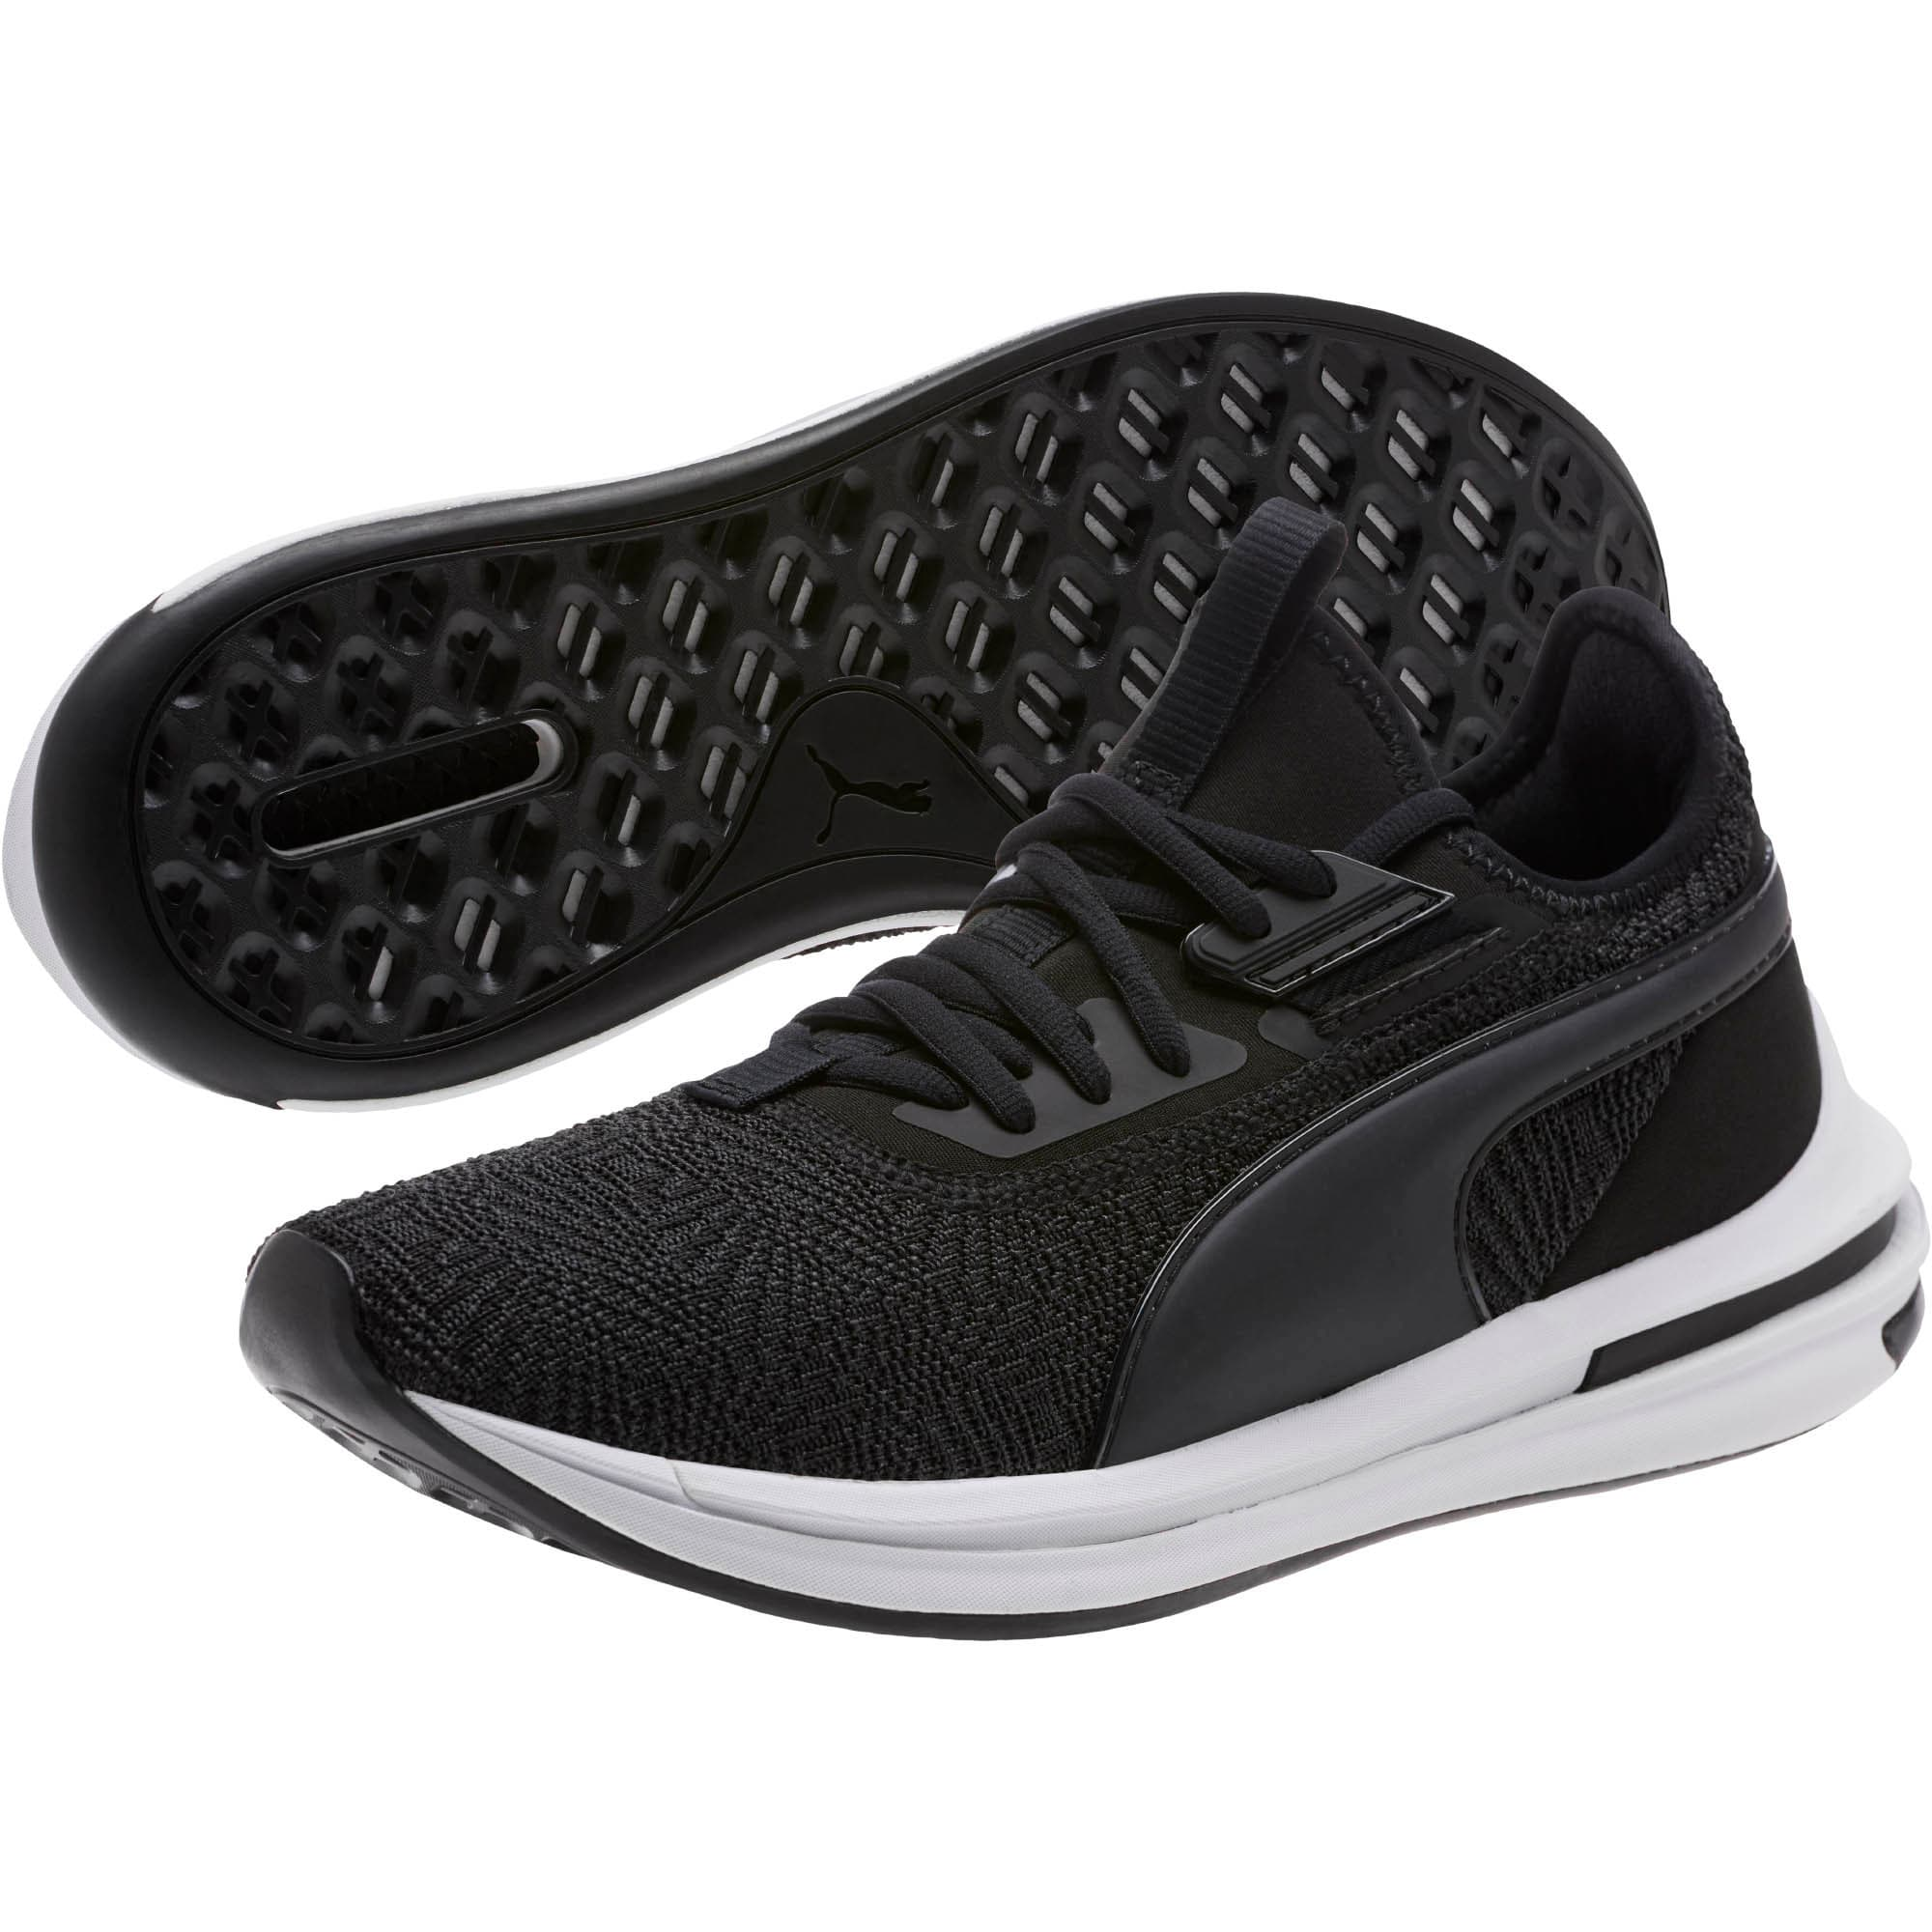 IGNITE Limitless SR-71 Women's Running Shoes, Puma Black, large